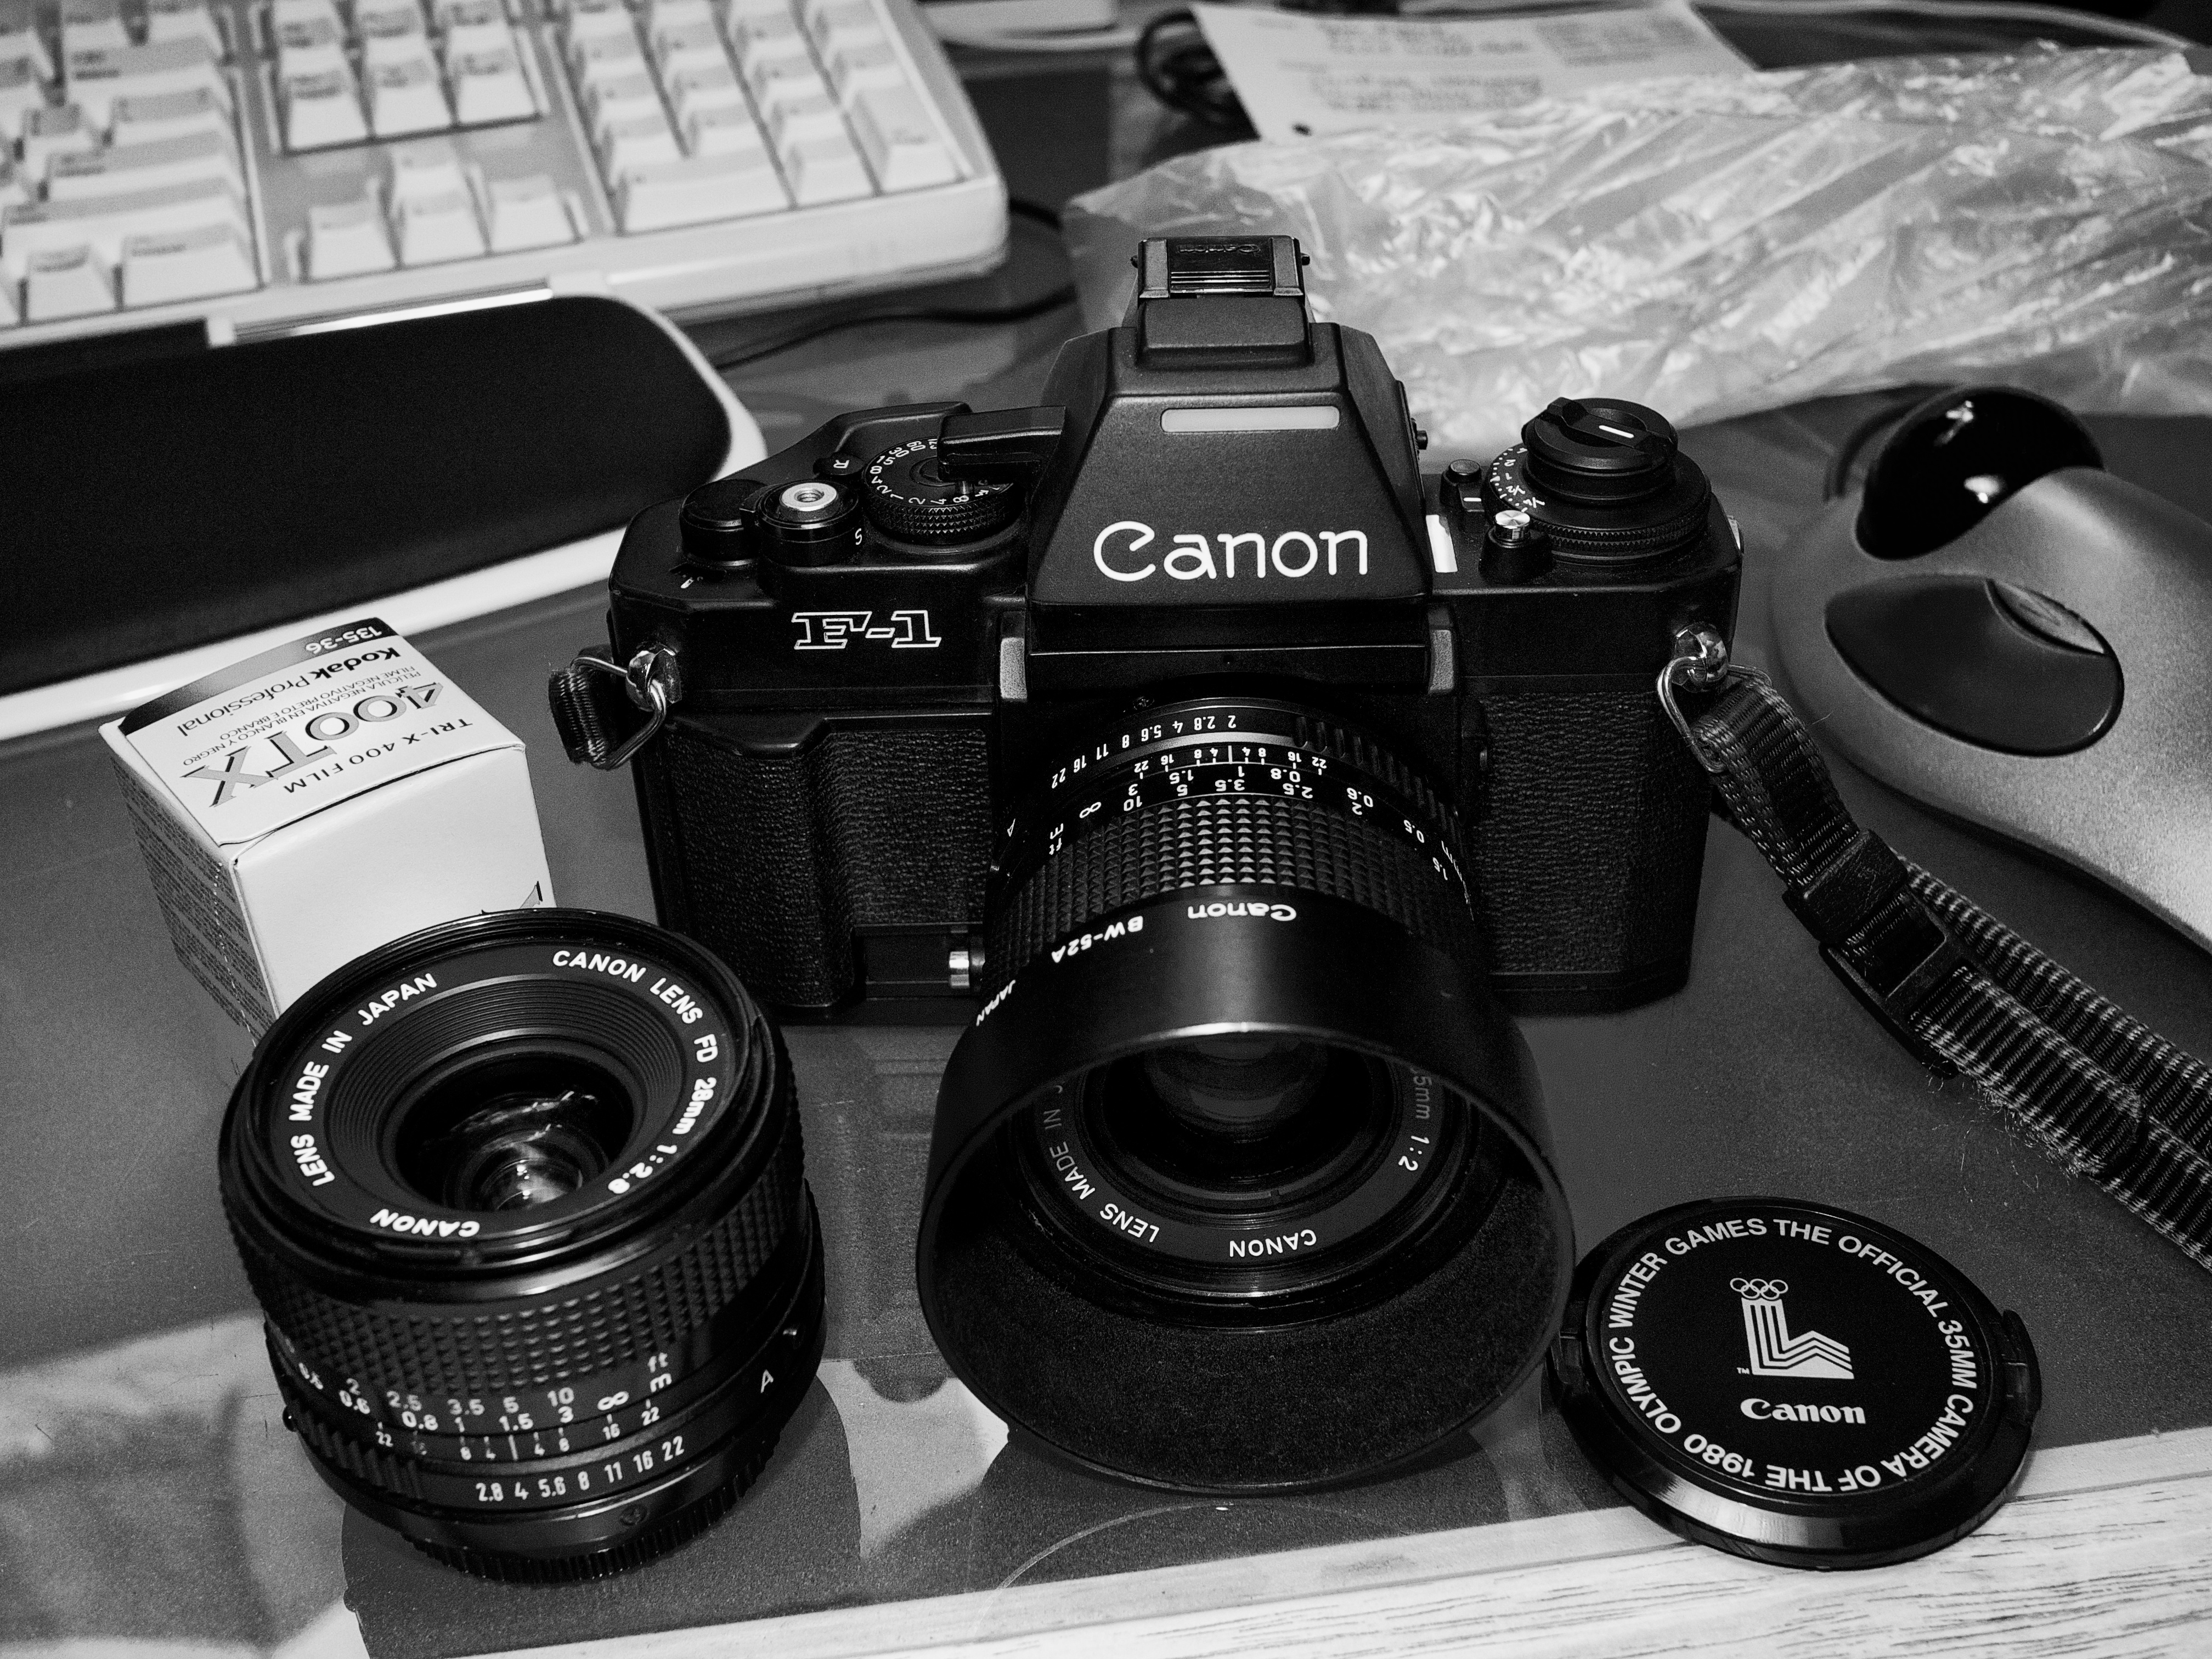 New to me Canon F1 New, Three Decades Young